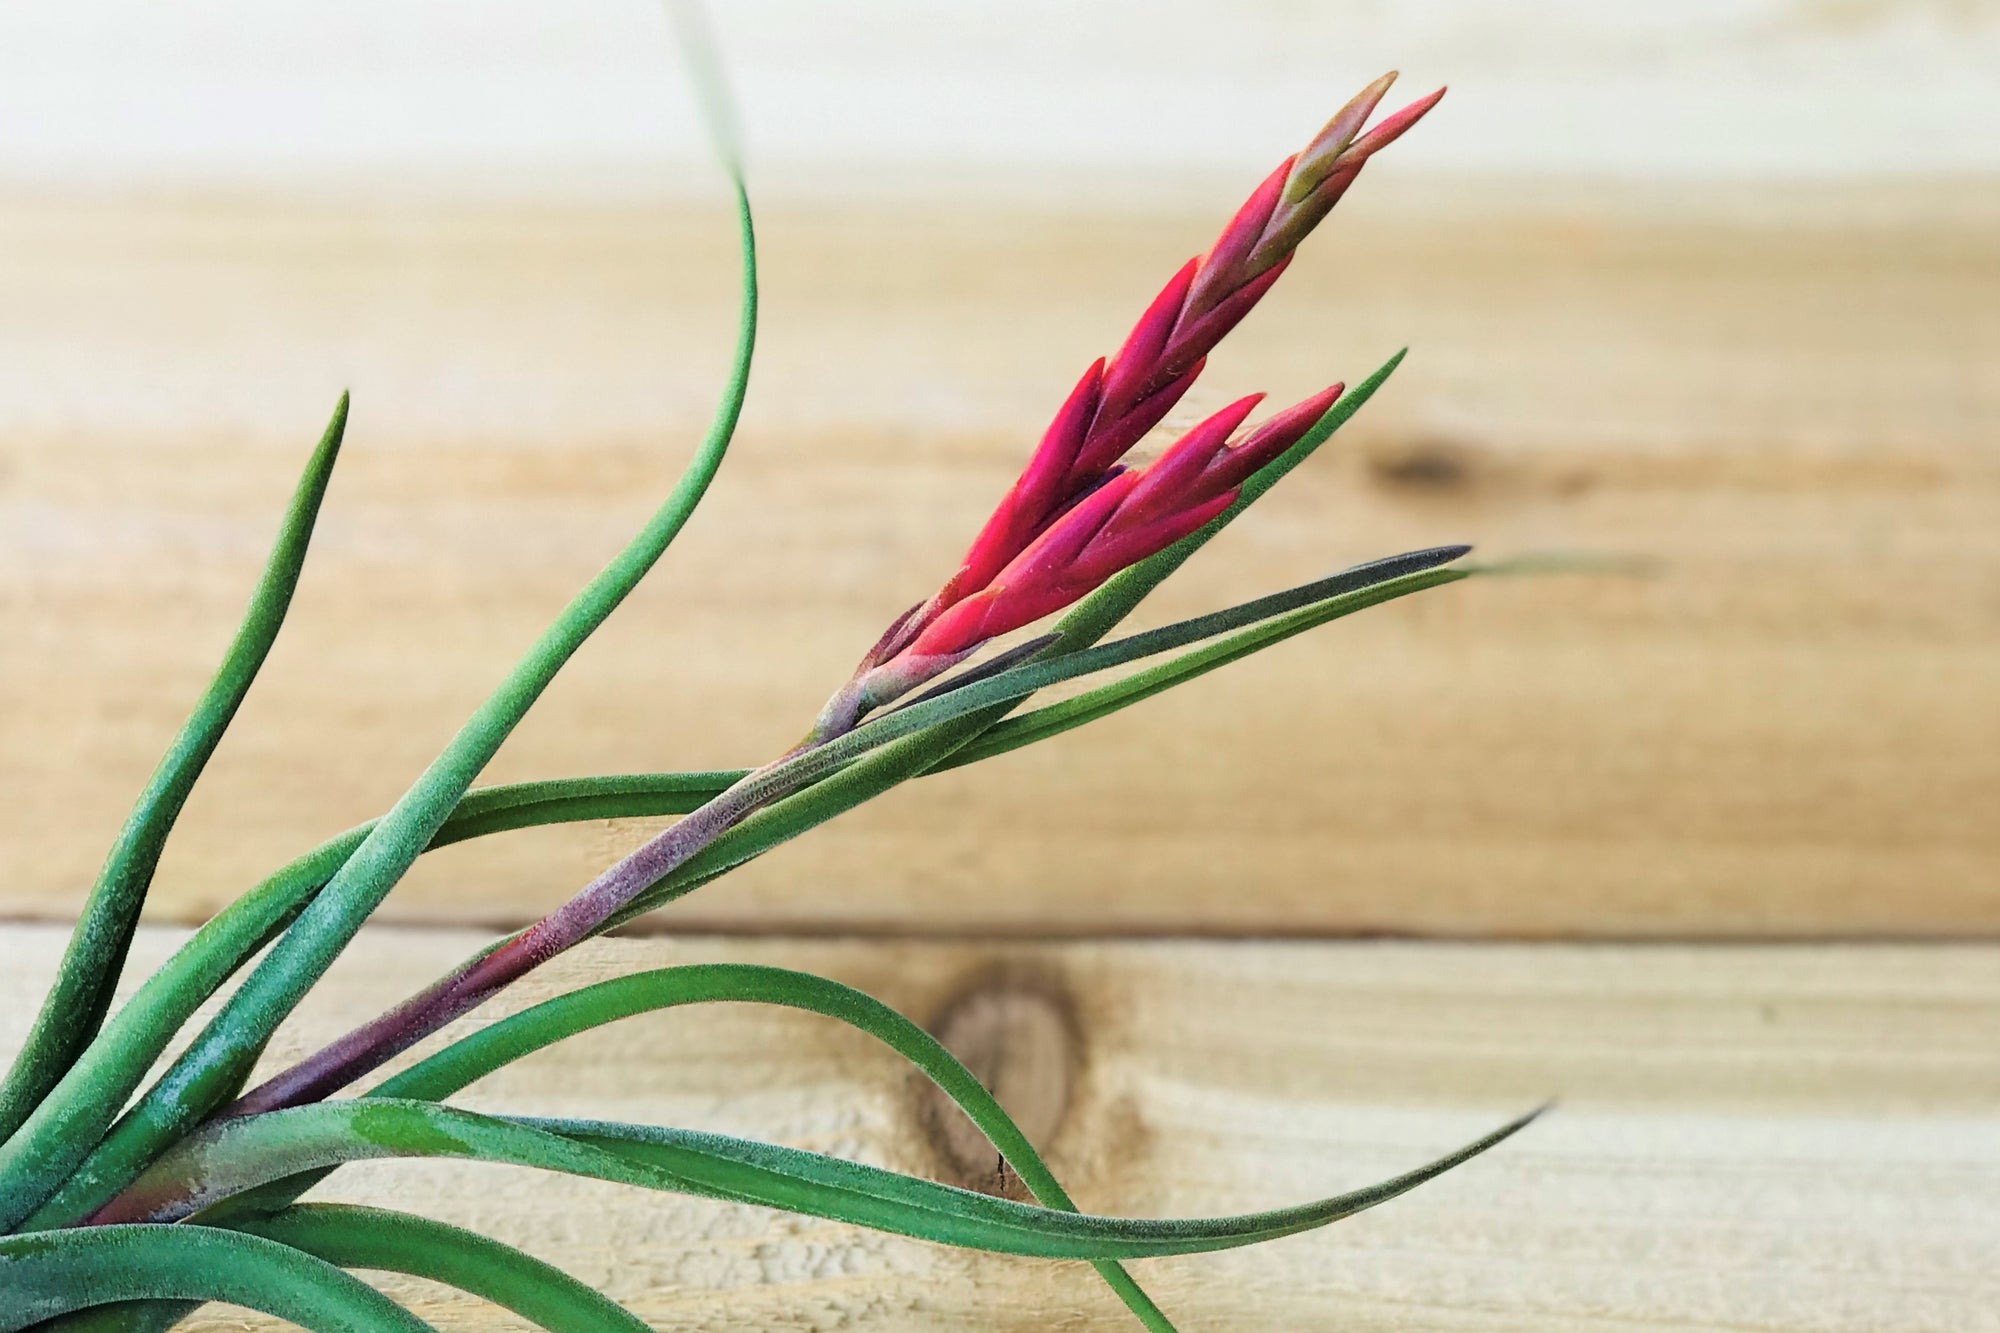 Sale: 50% Off [10, 20 or 50 Pack] Tillandsia Caput-Medusae Air Plants